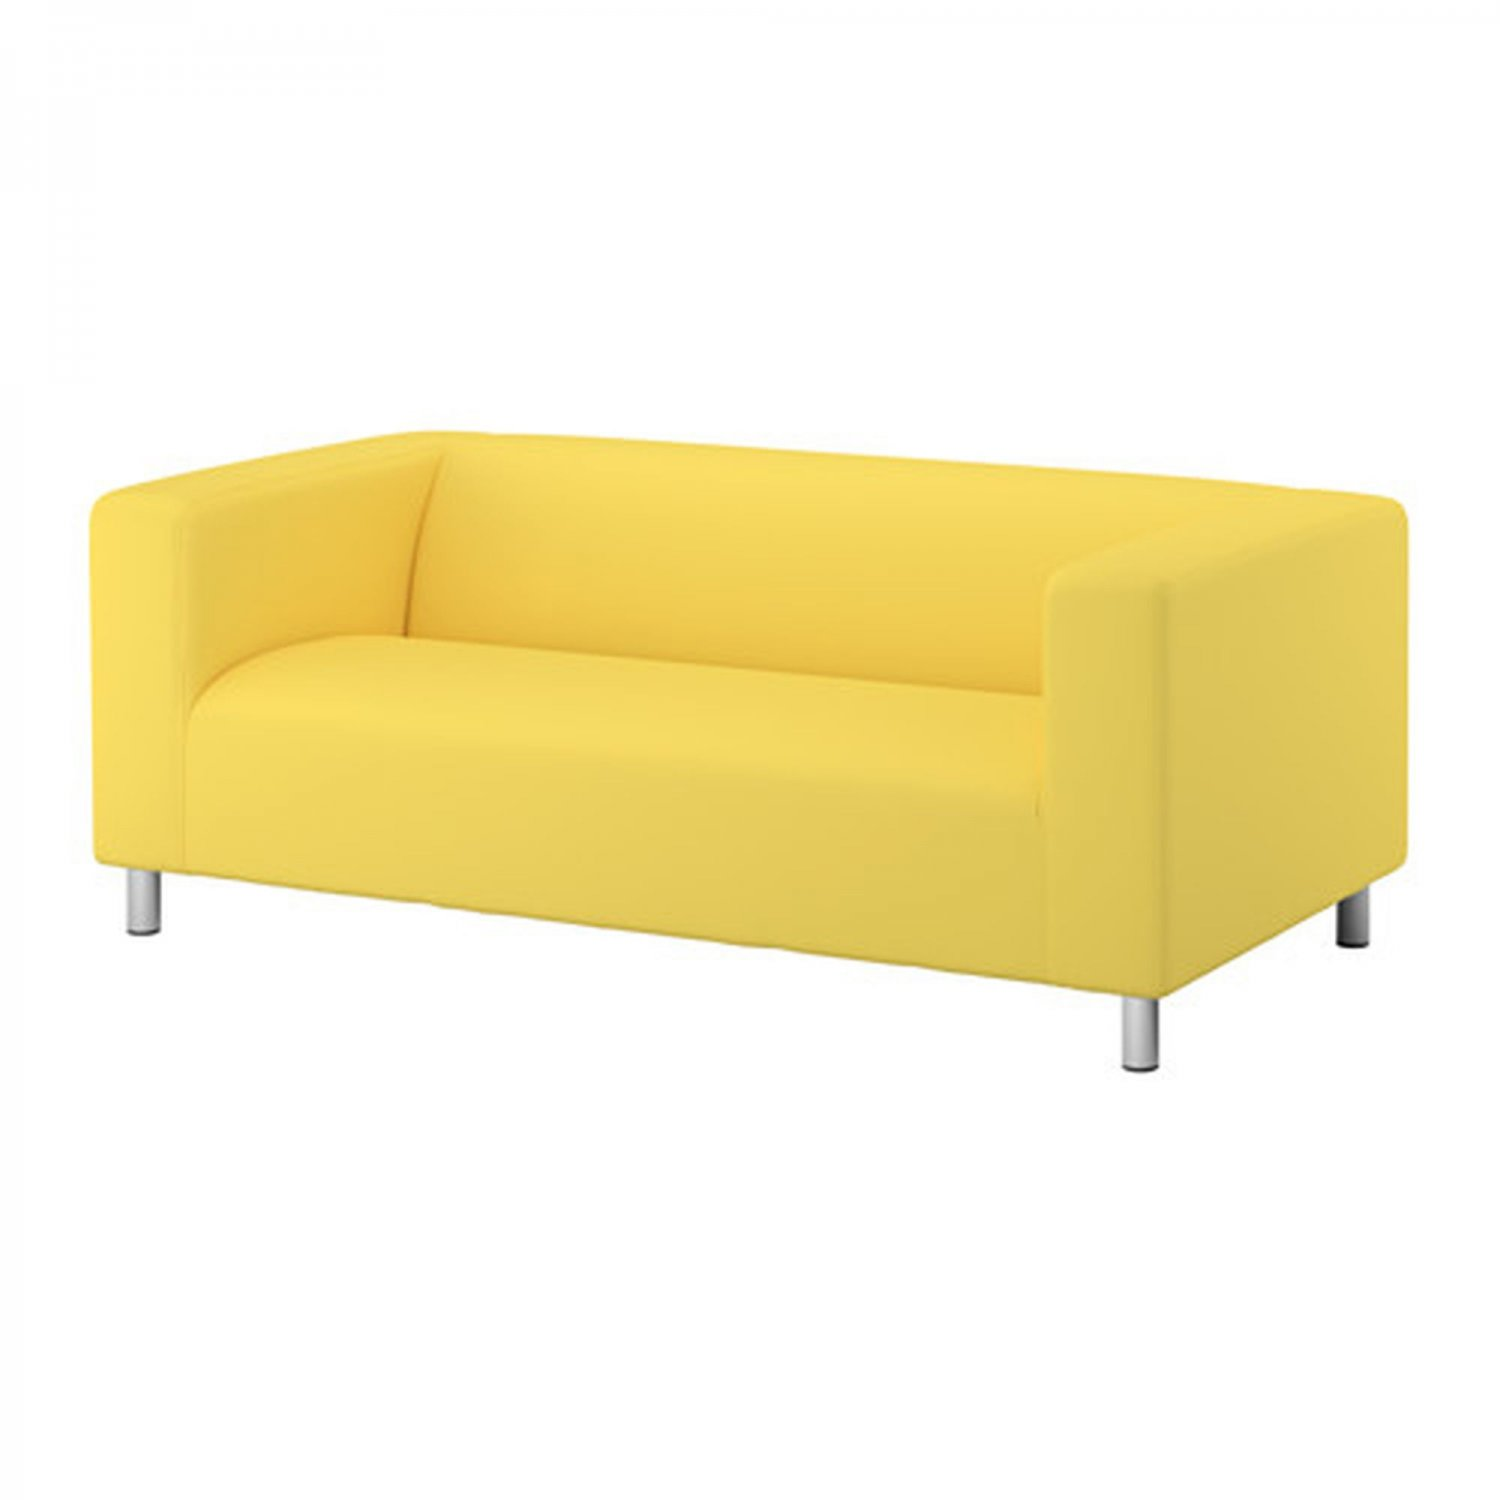 ikea klippan loveseat sofa slipcover cover vissle yellow. Black Bedroom Furniture Sets. Home Design Ideas